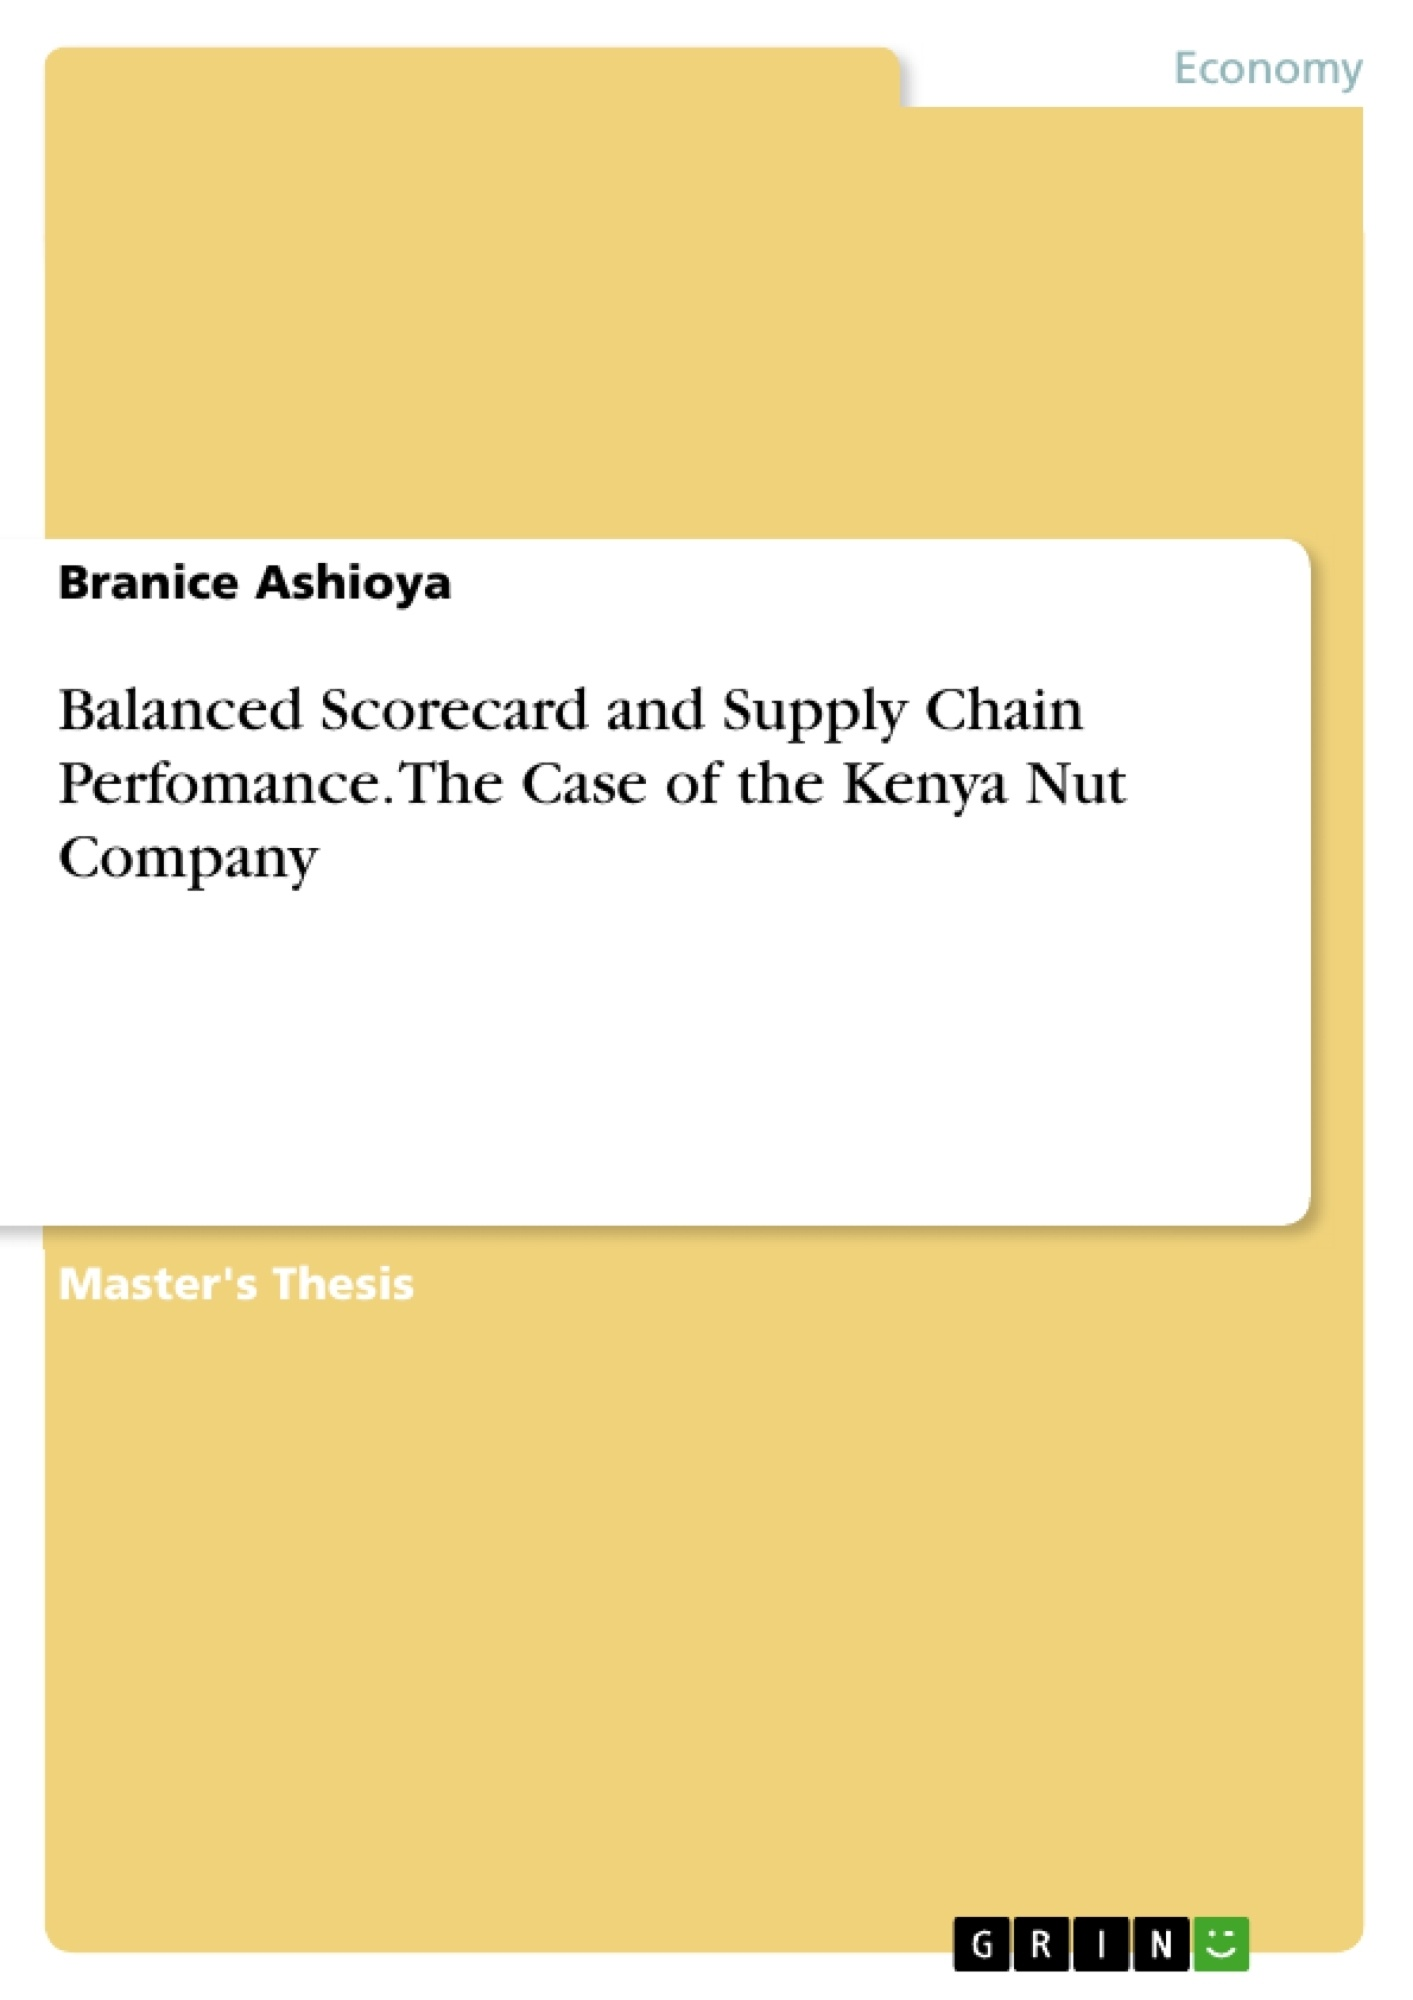 Title: Balanced Scorecard and Supply Chain Perfomance. The Case of the Kenya Nut Company